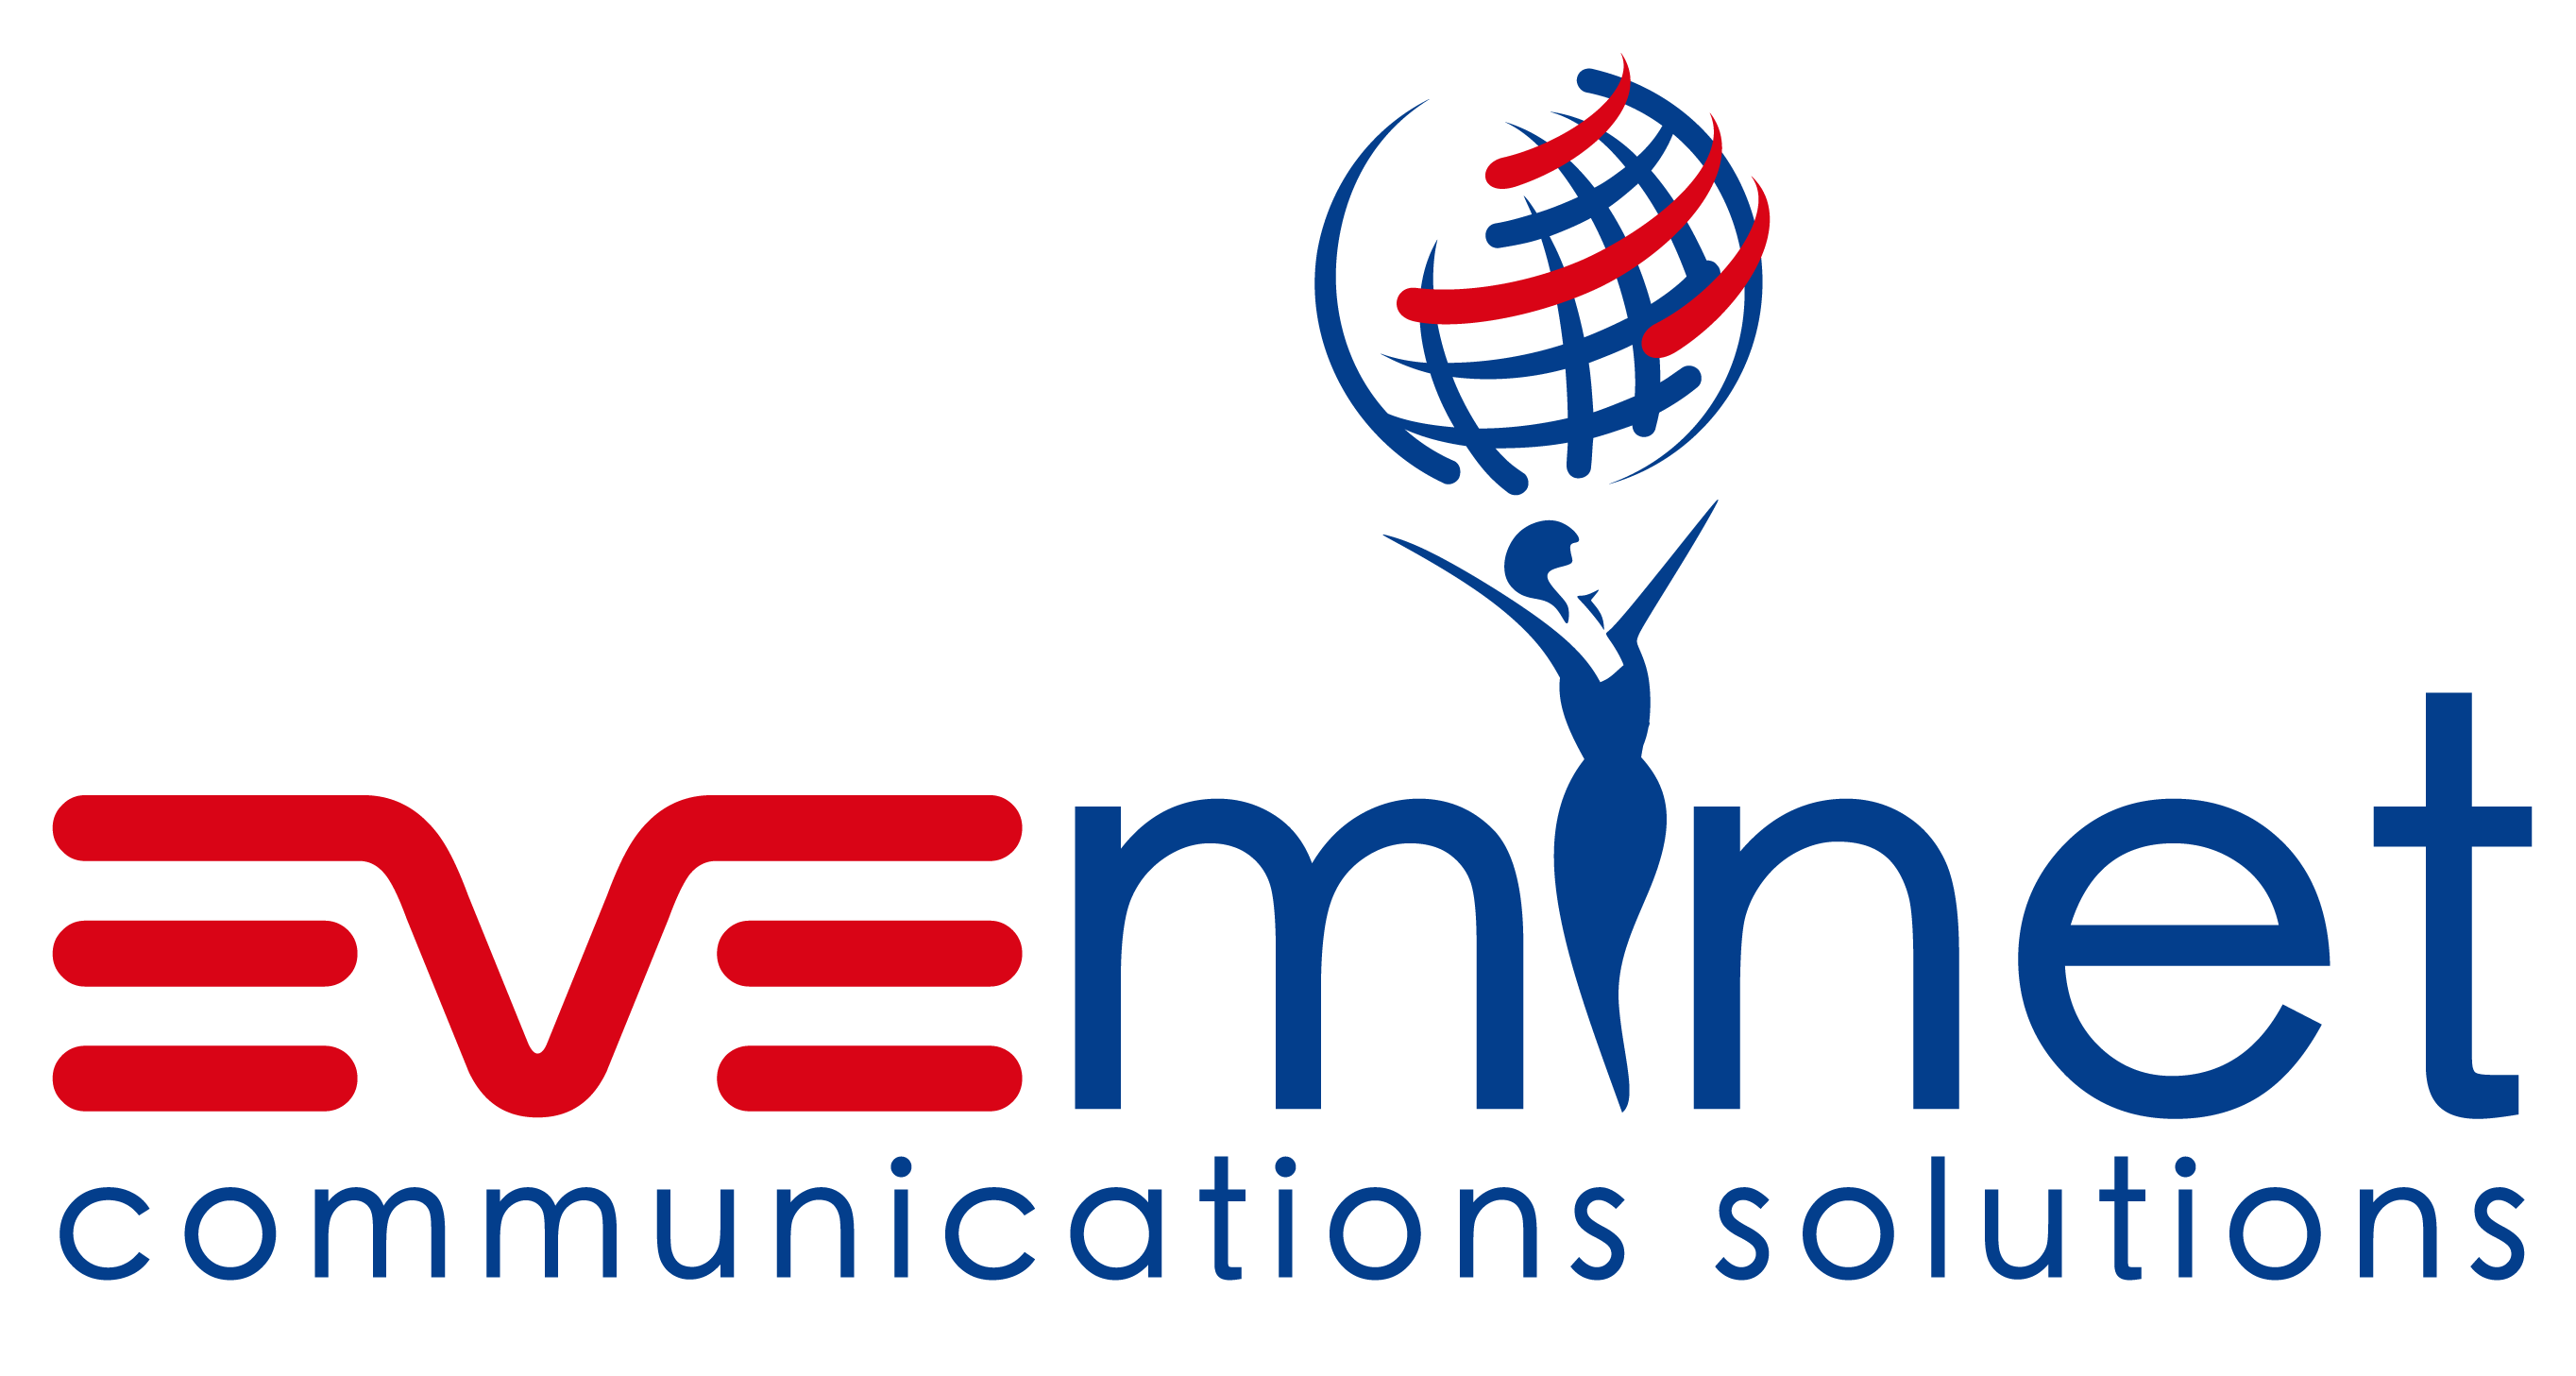 Eveminet Communications Solutions Limited - Engaging, Innovative Learning